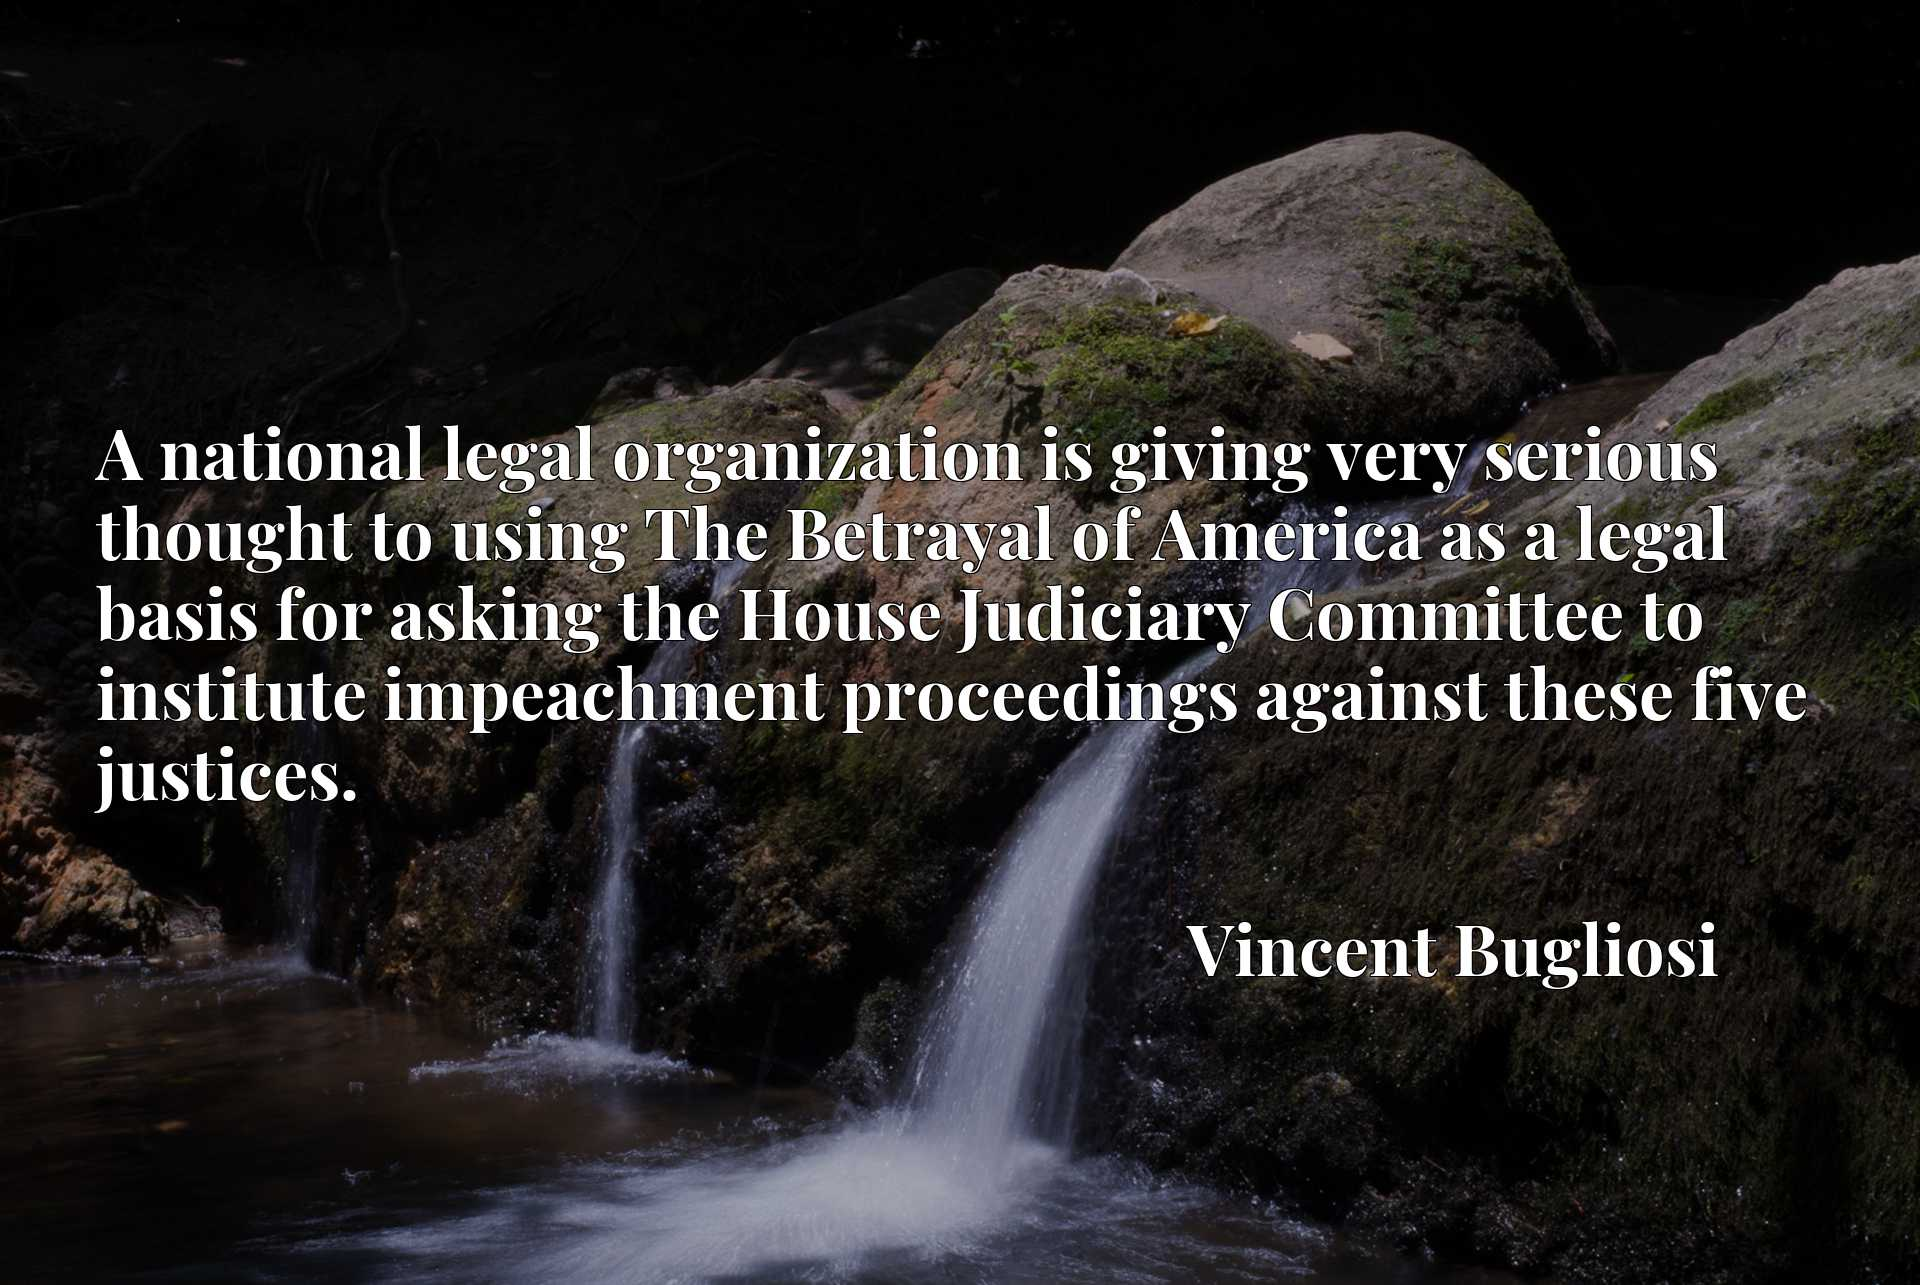 Quote Picture :A national legal organization is giving very serious thought to using The Betrayal of America as a legal basis for asking the House Judiciary Committee to institute impeachment proceedings against these five justices.